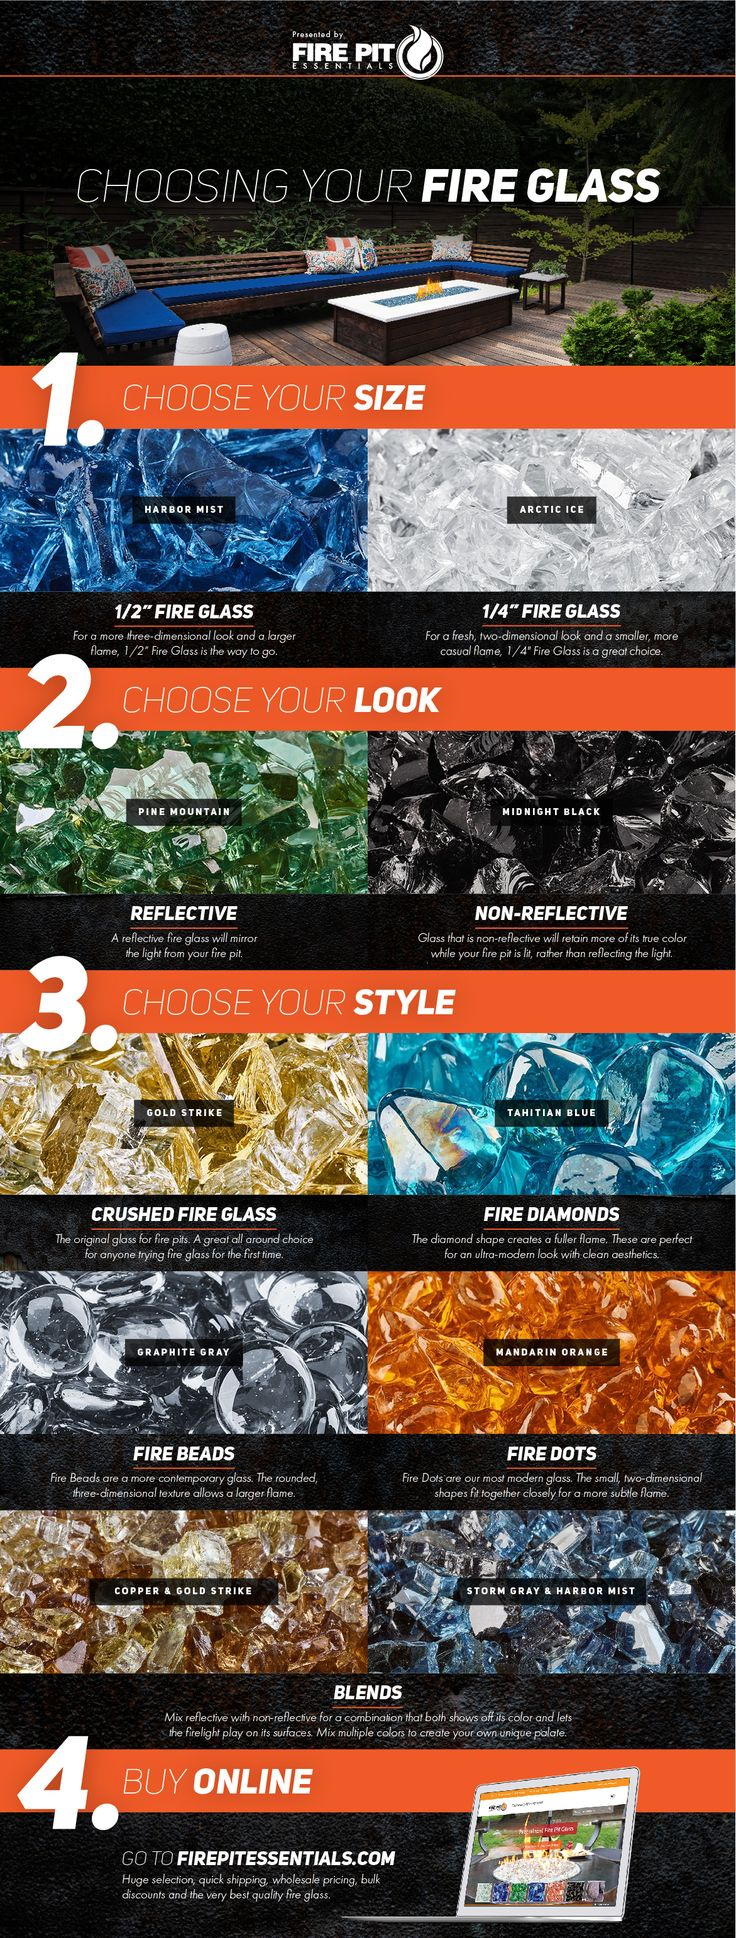 www.firepitessentials.com wp-content uploads 2016 12 Choosing-Your-Fire-Glass.jpg